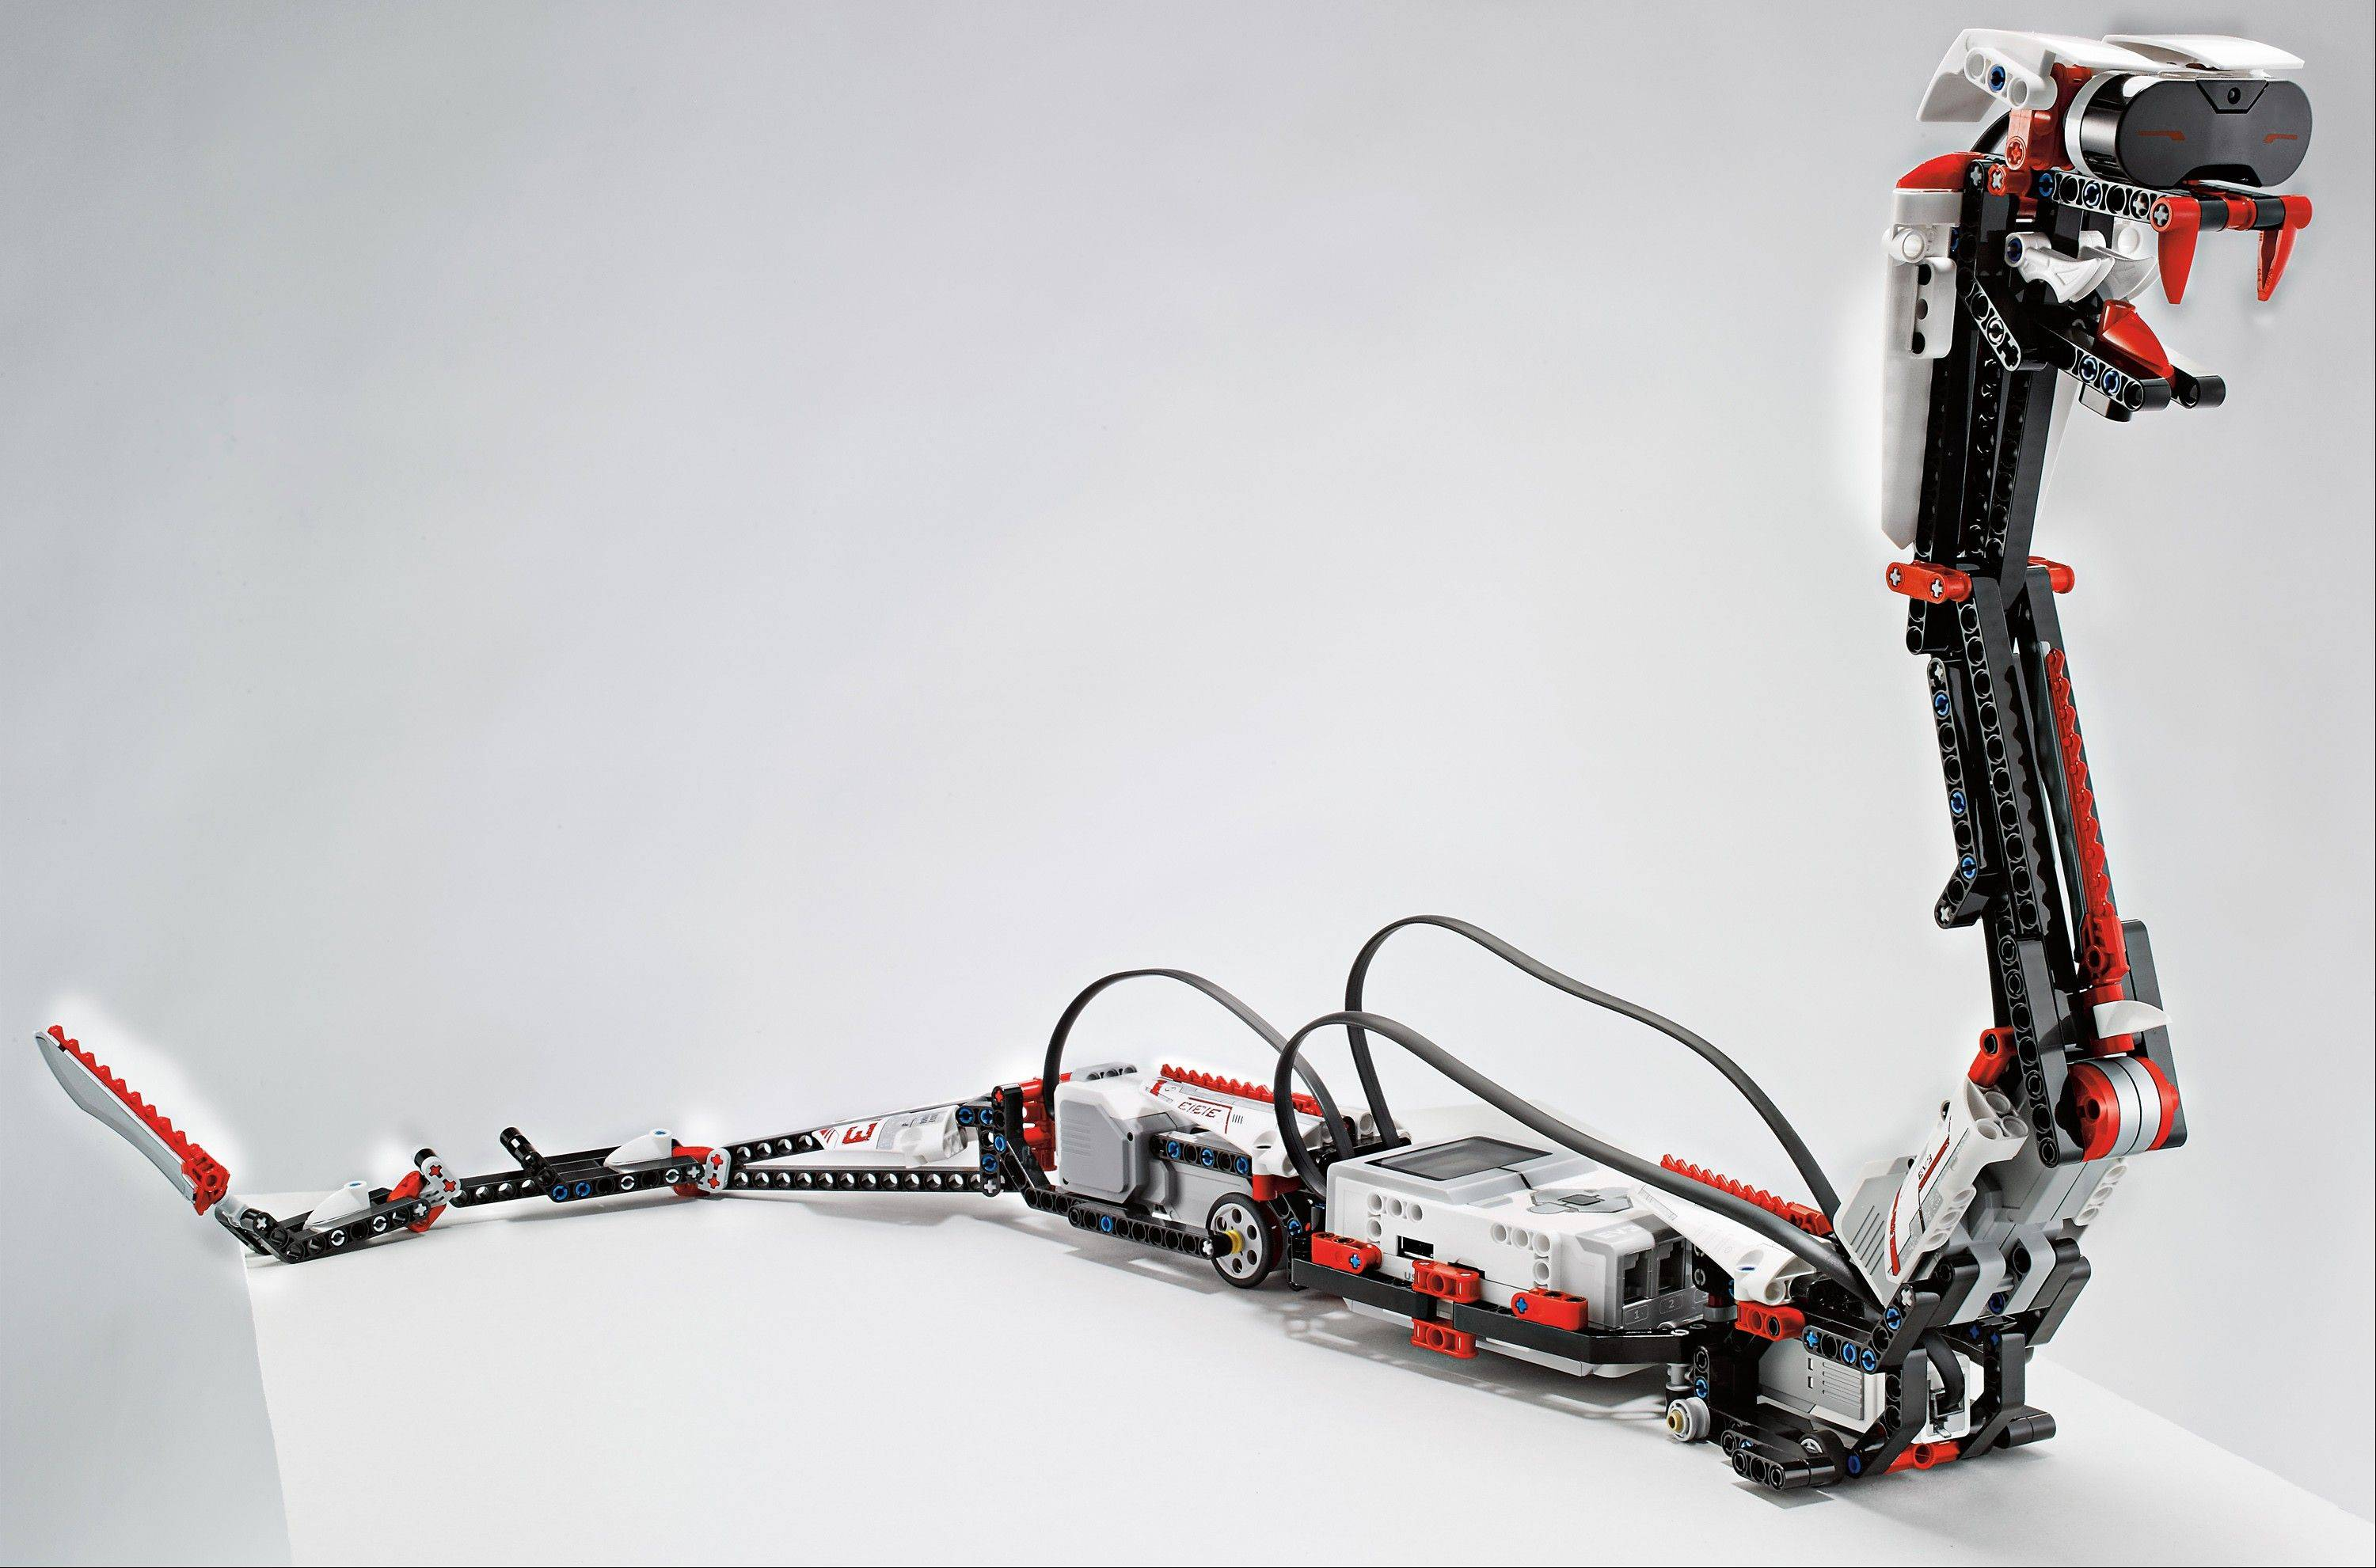 This undated photo provided by Lego shows 'Reptar,' a robotic snake that is one of 17 possible creations available in the new, $350 Lego Mindstorms EV3 platform that will have the ability to talk to iPhones, iPads and iPod Touches through Bluetooth wireless connections. Lego is scheduled to announce the kit Monday at the International Consumer Electronics Show in Las Vegas.